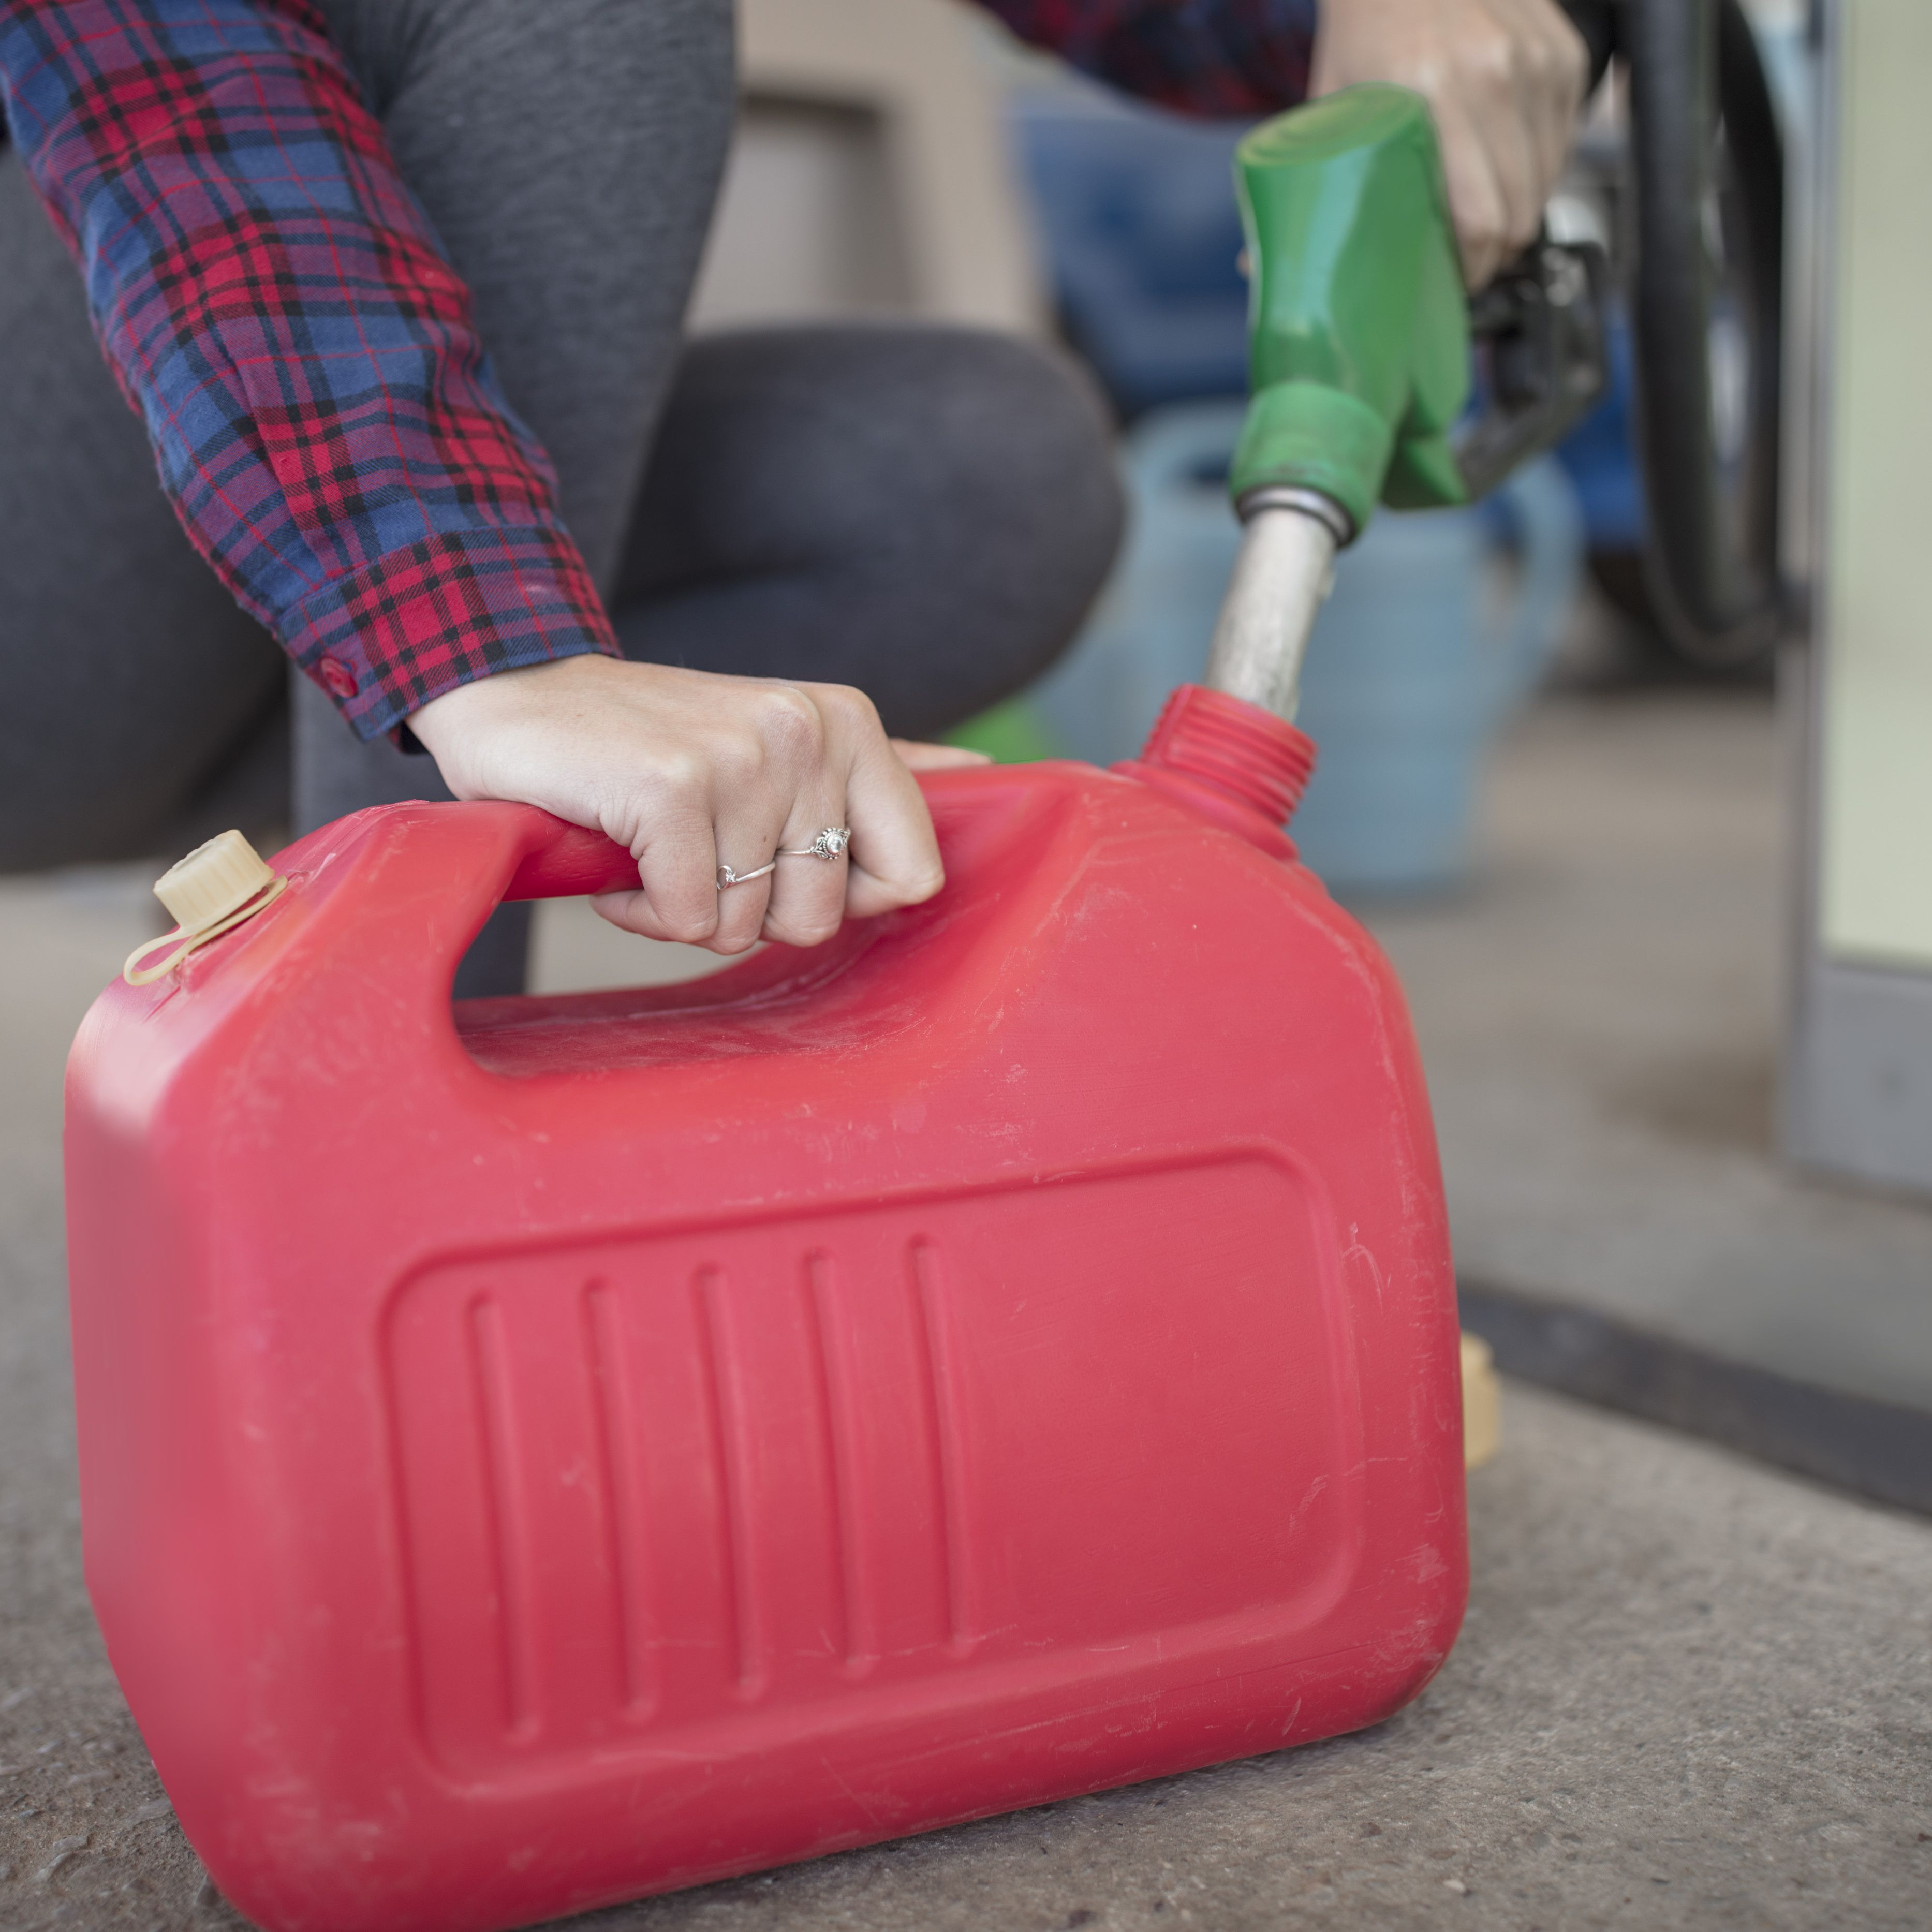 The 7 Best Gas Cans of 2019